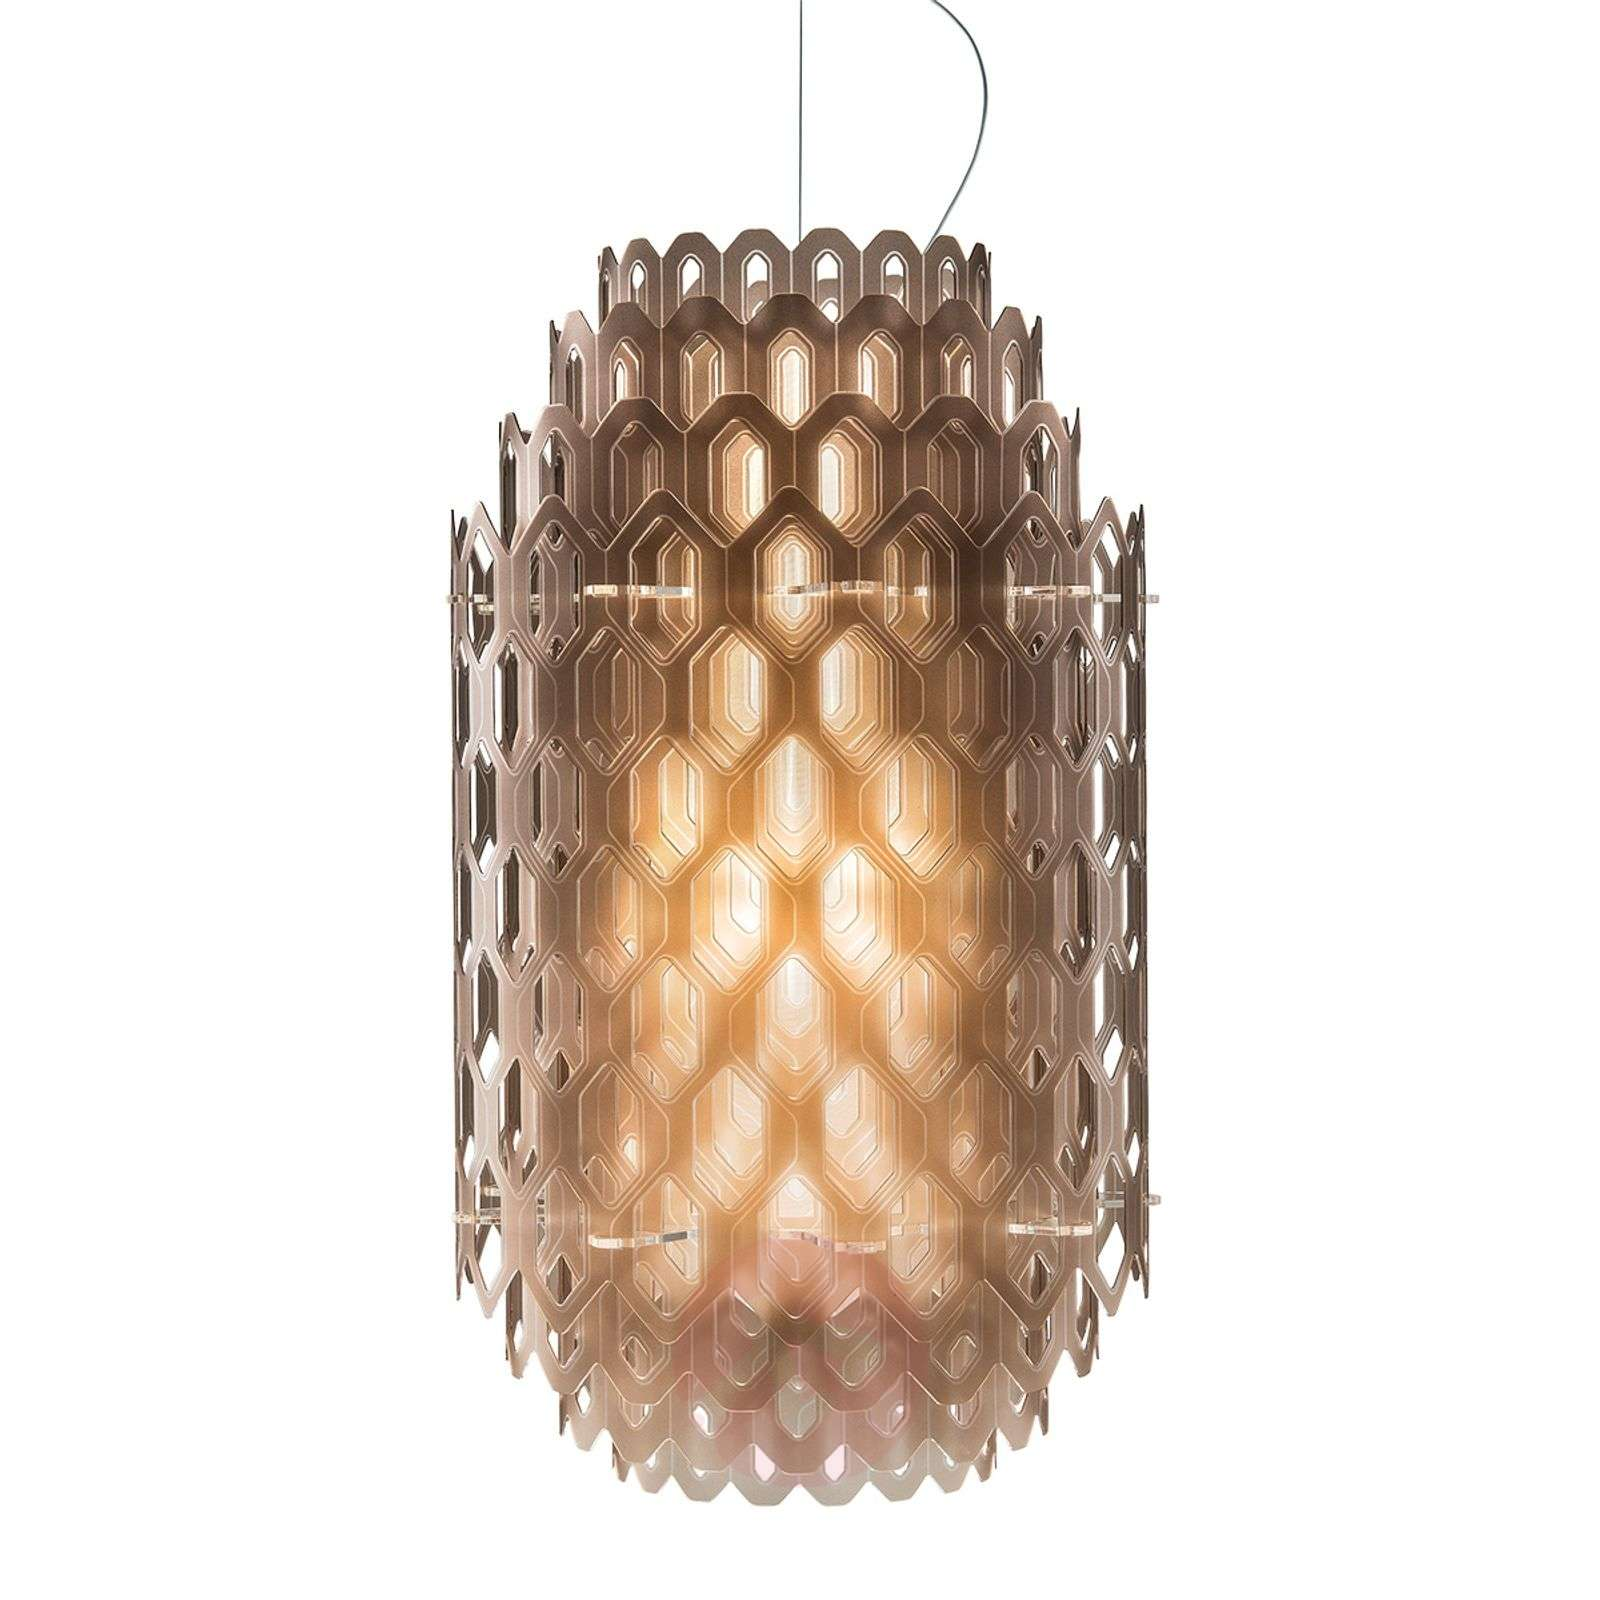 Chantal designer hanging light with LED | Lights.co.uk